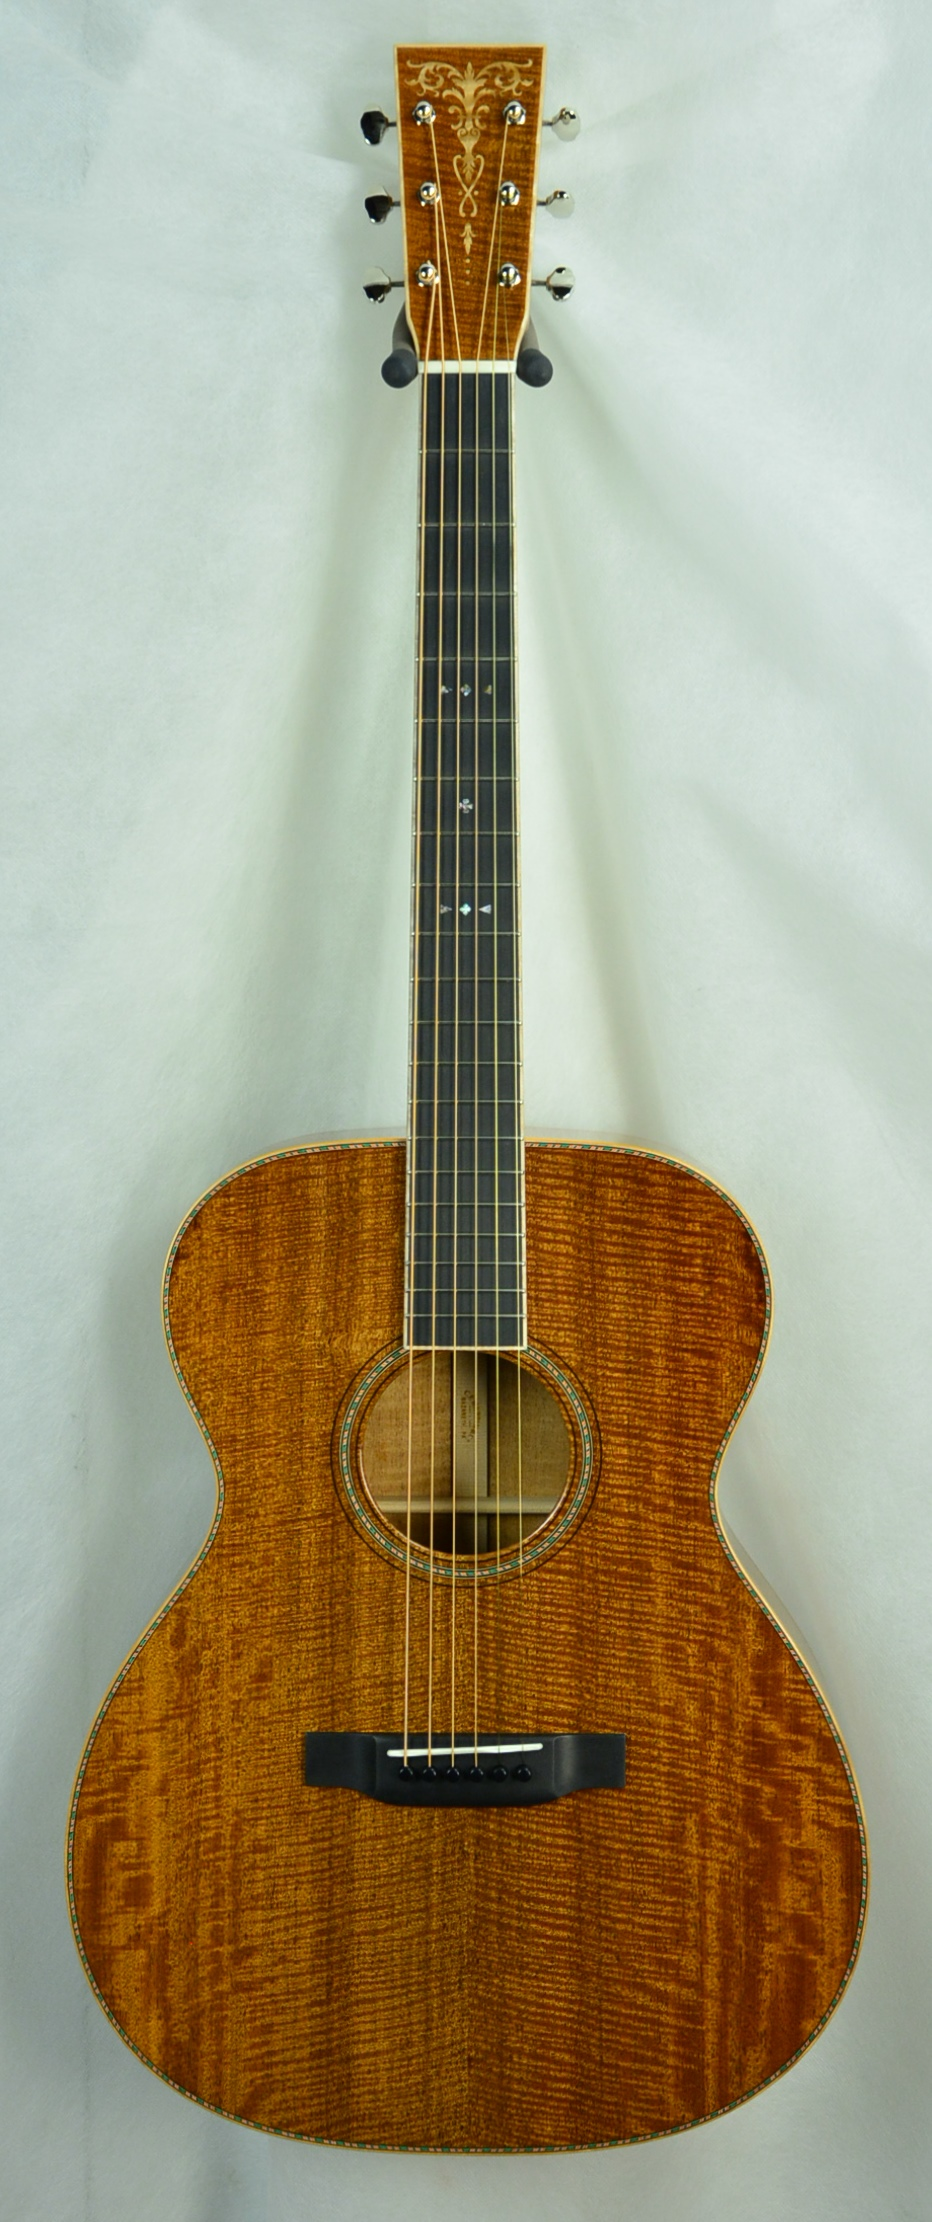 Q-2499624 S-1880673 OM Fiddleback TBS Maple inlay (1).JPG